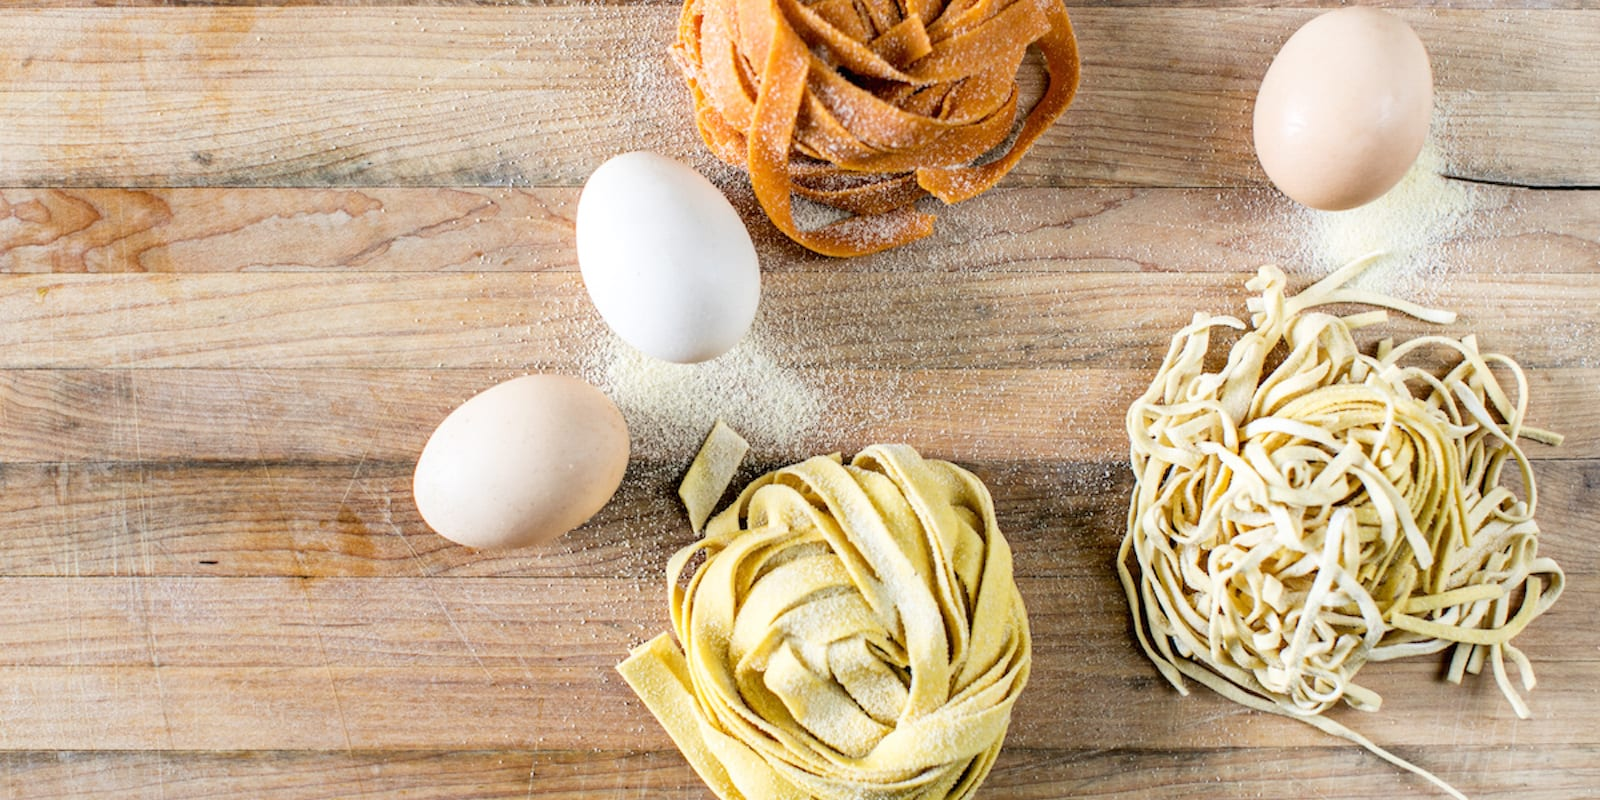 6 Popular Pasta Recipes from Southern Chefs